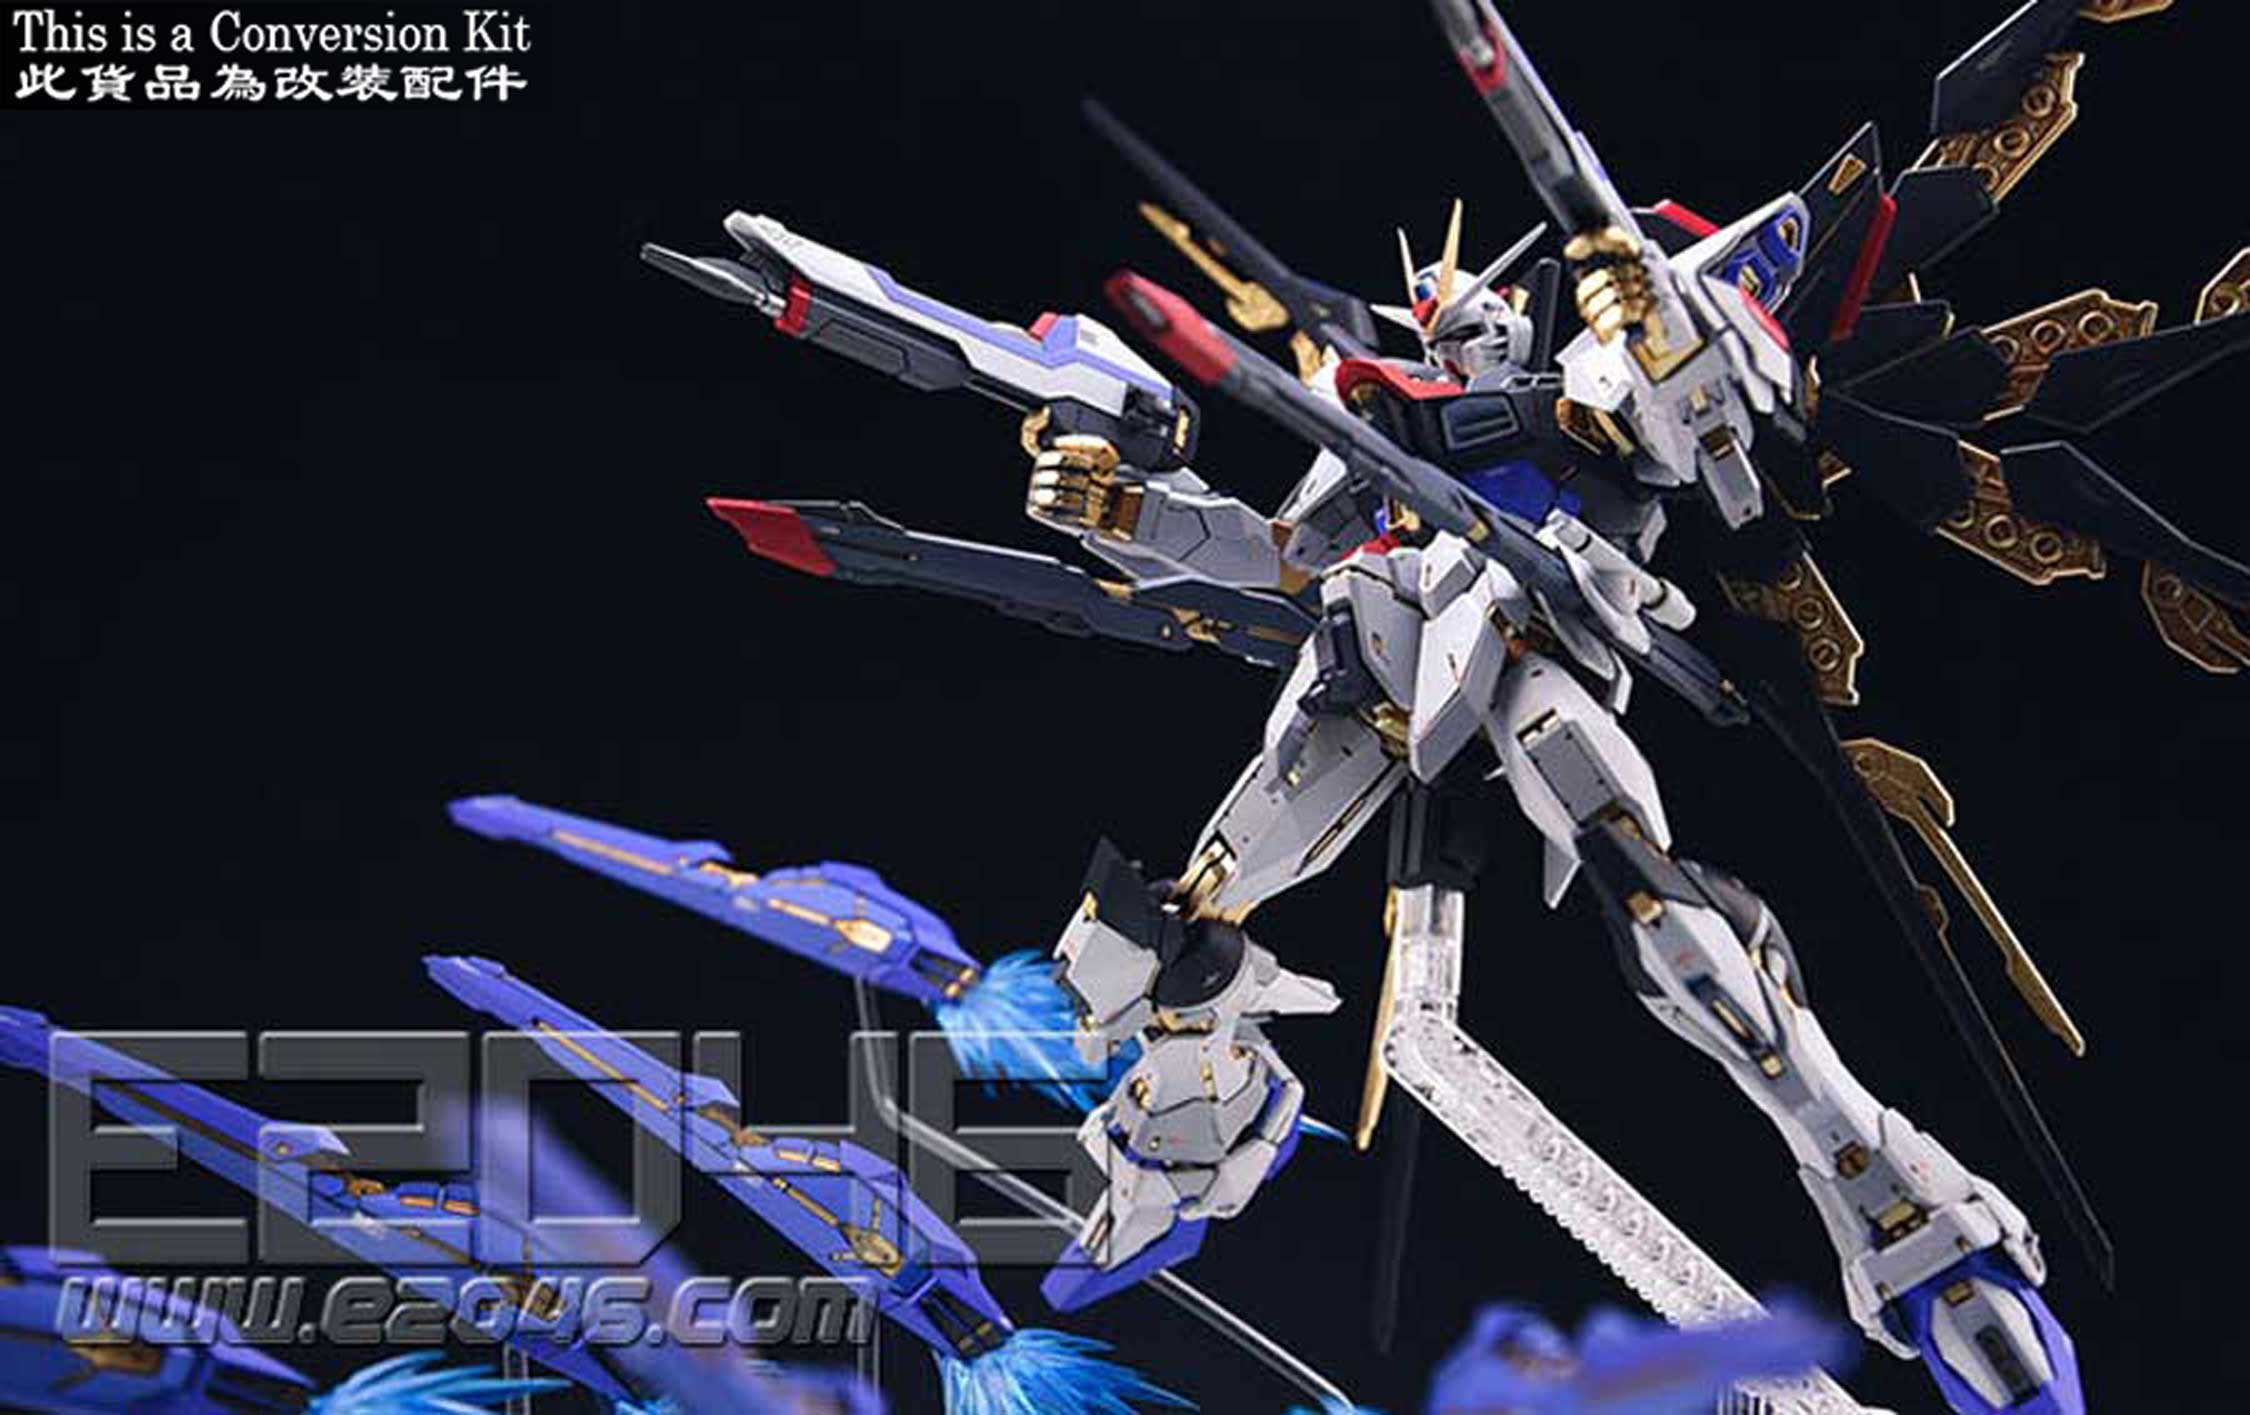 Strike Freedom Conversion Kit